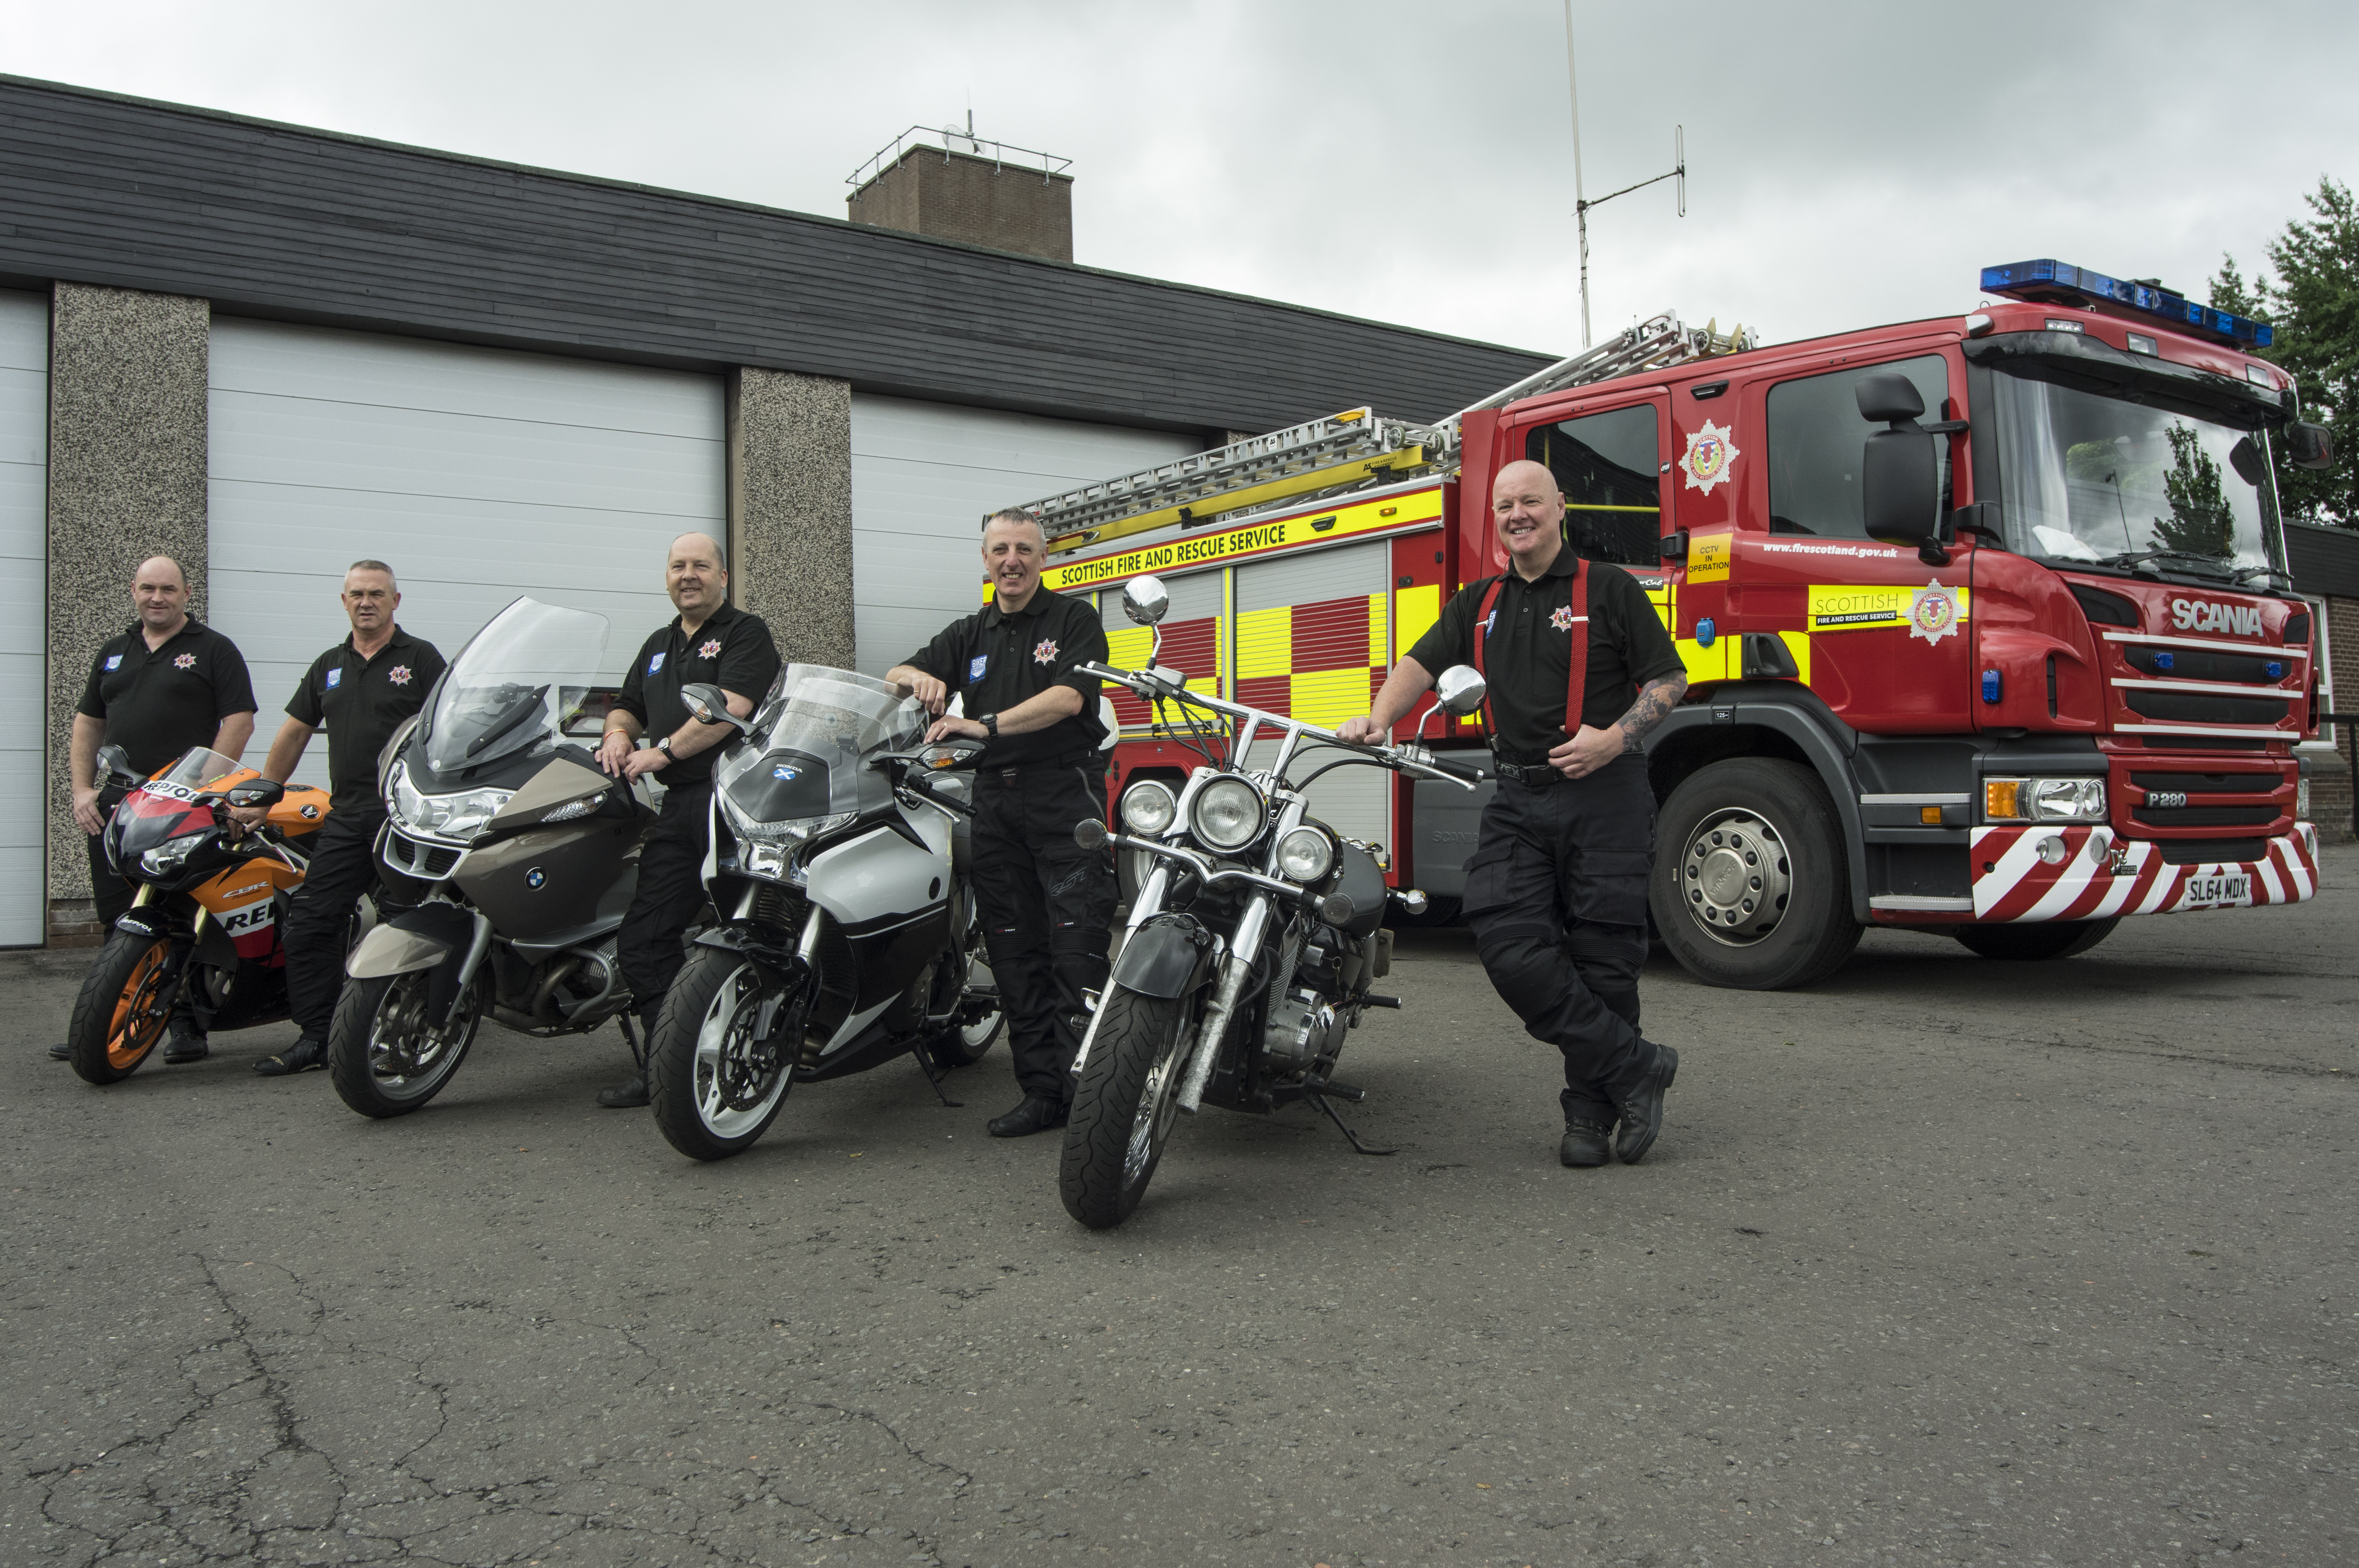 Firefighters work with bikers to help reduce injuries and death toll